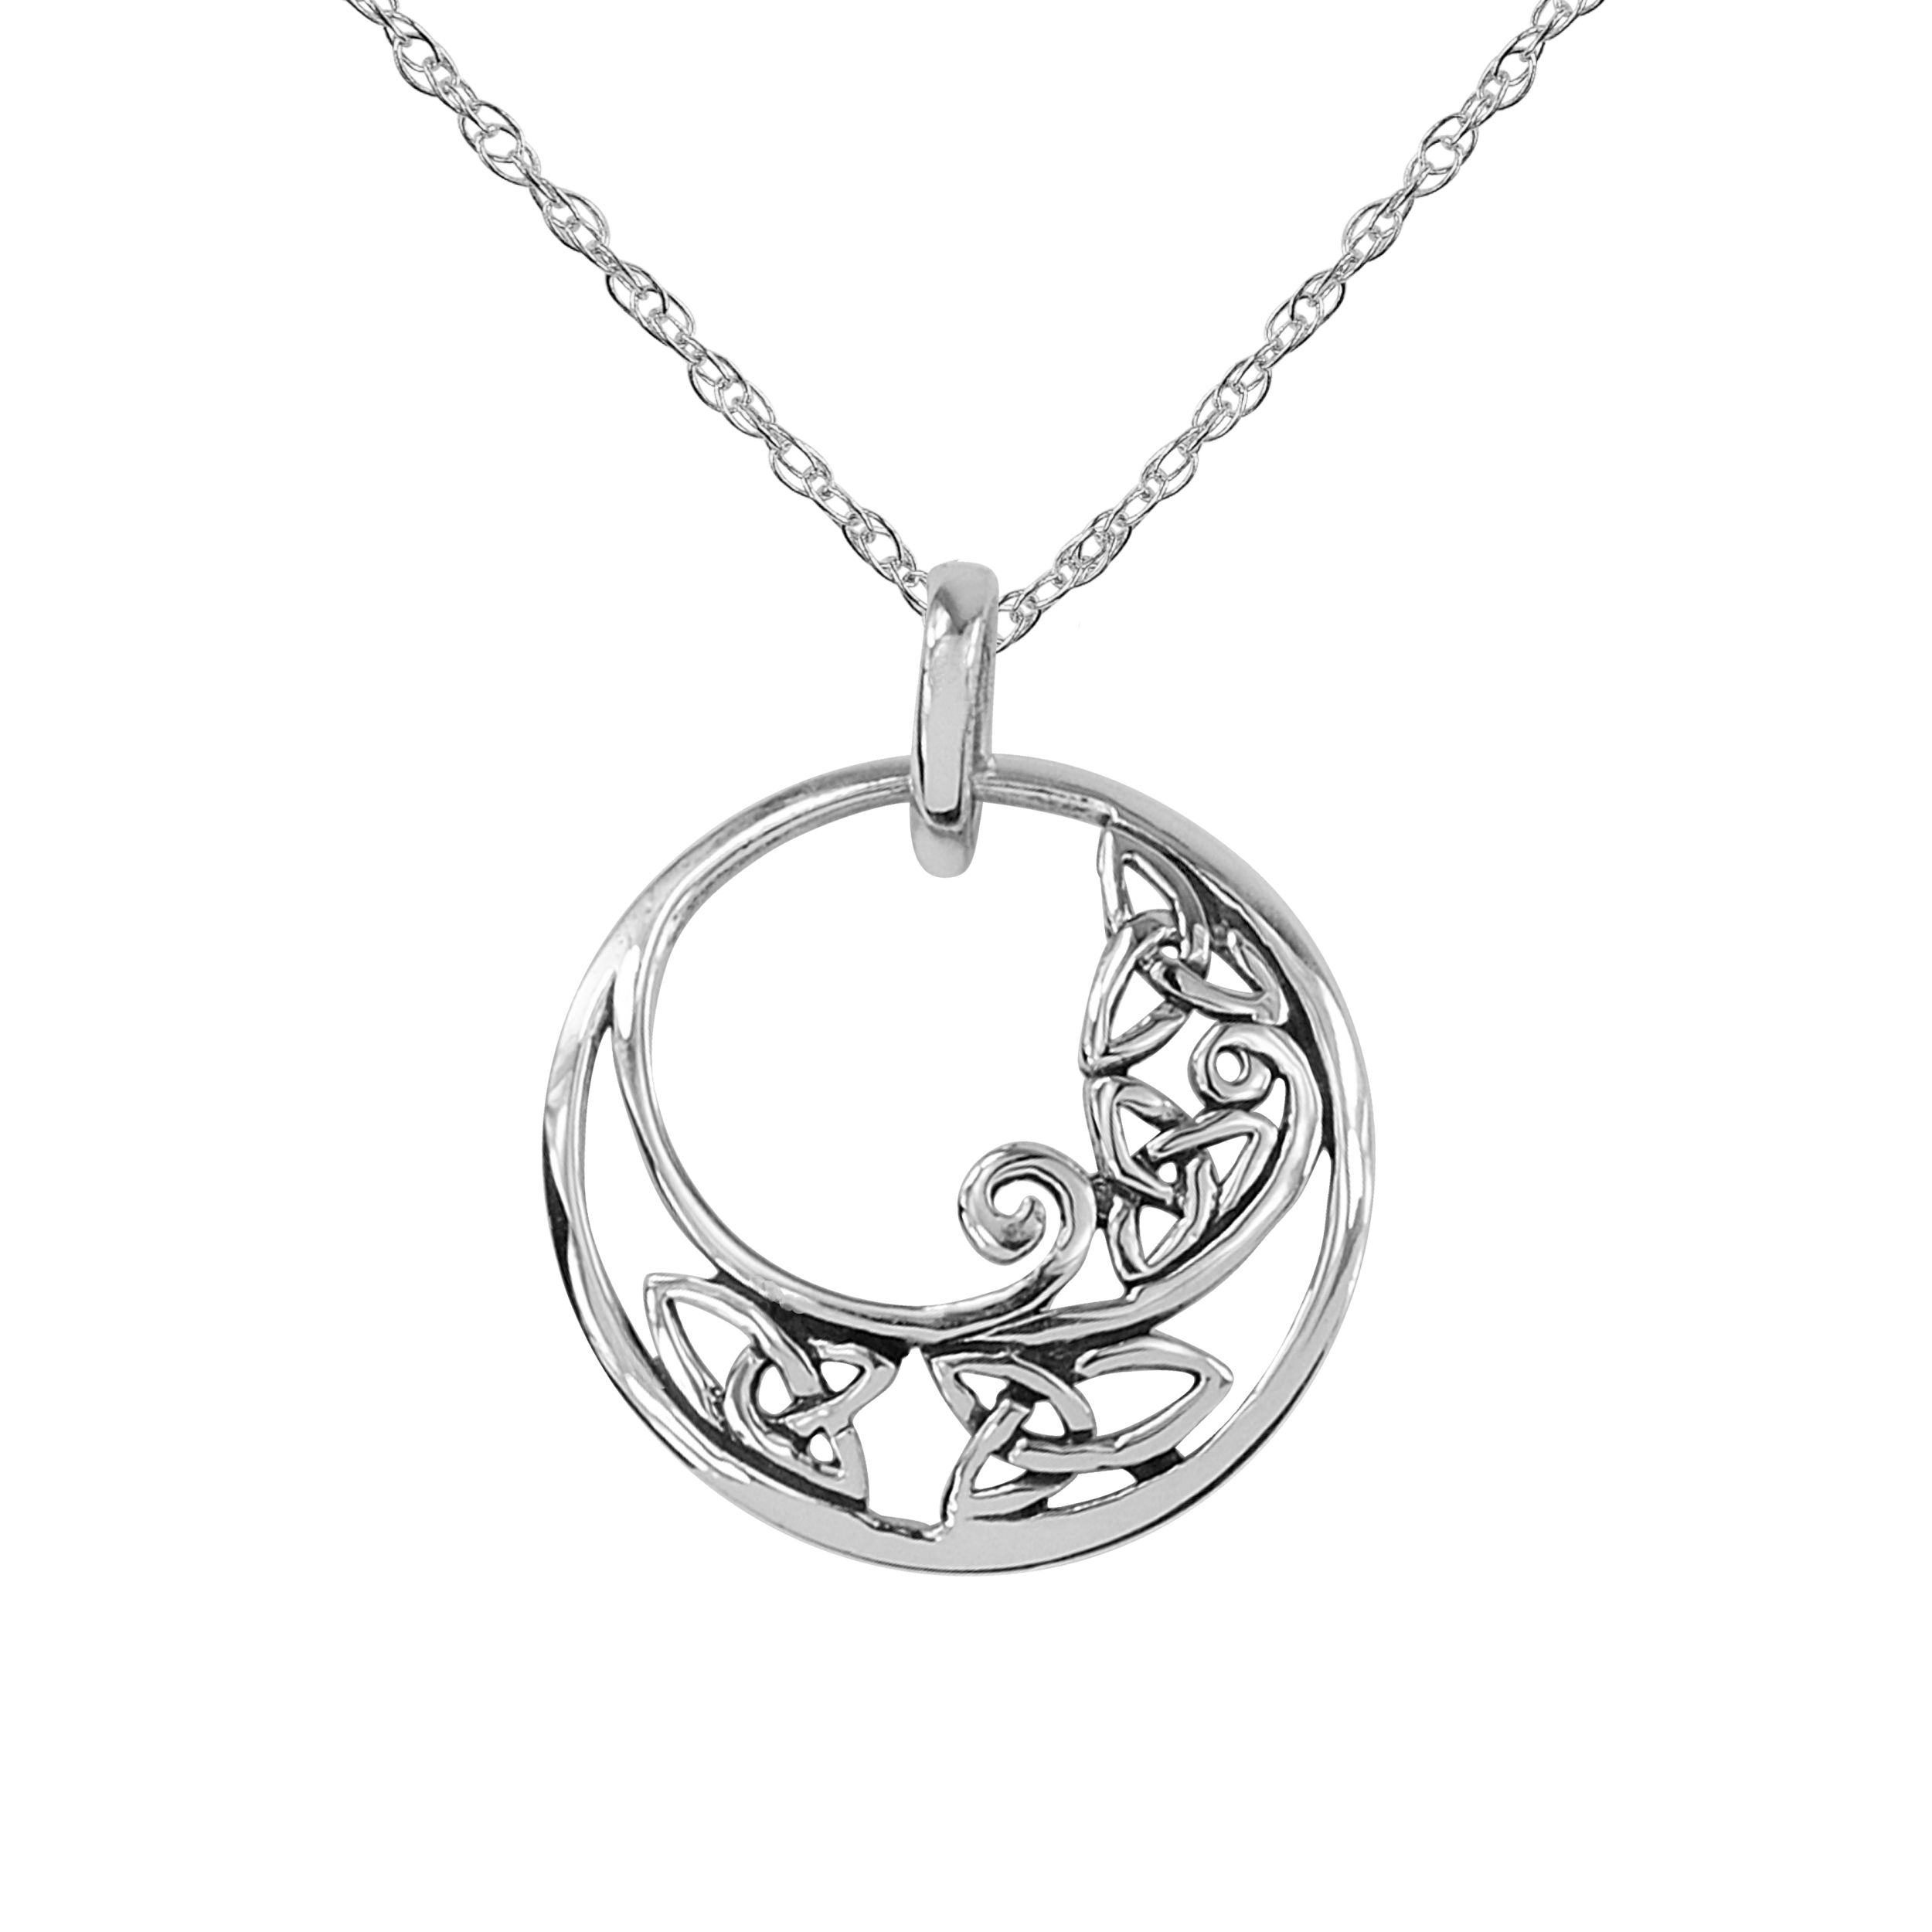 itm sun charm pendant necklace celtic ebay jnt wheel jewelry pewter silver